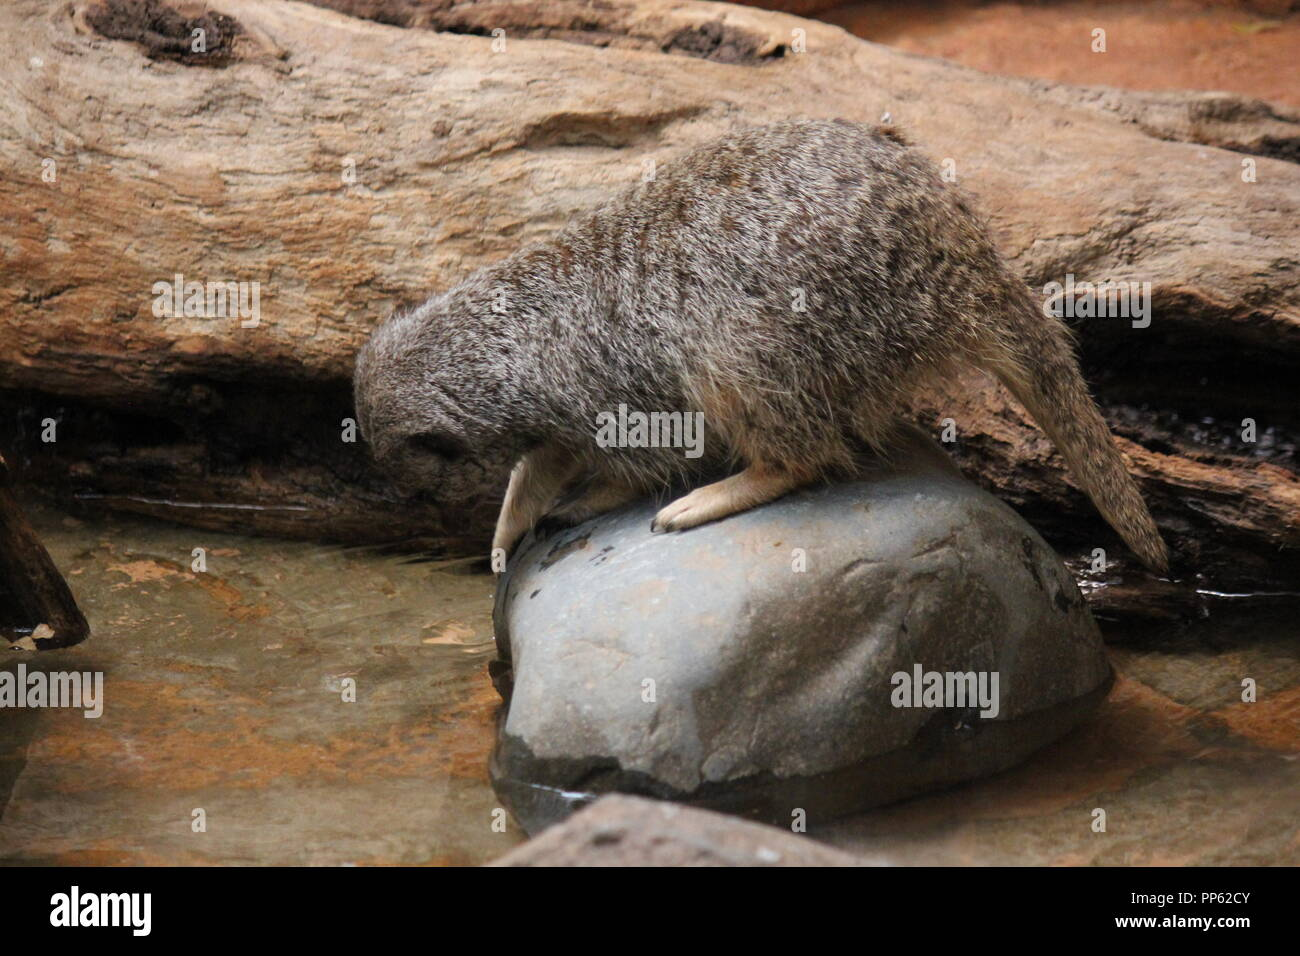 Lincoln Park Zoo's Meerkat, Suricata suricatta, S. suricatta , playing around the water and sitting on a rock in Chicago, Illinois. - Stock Image